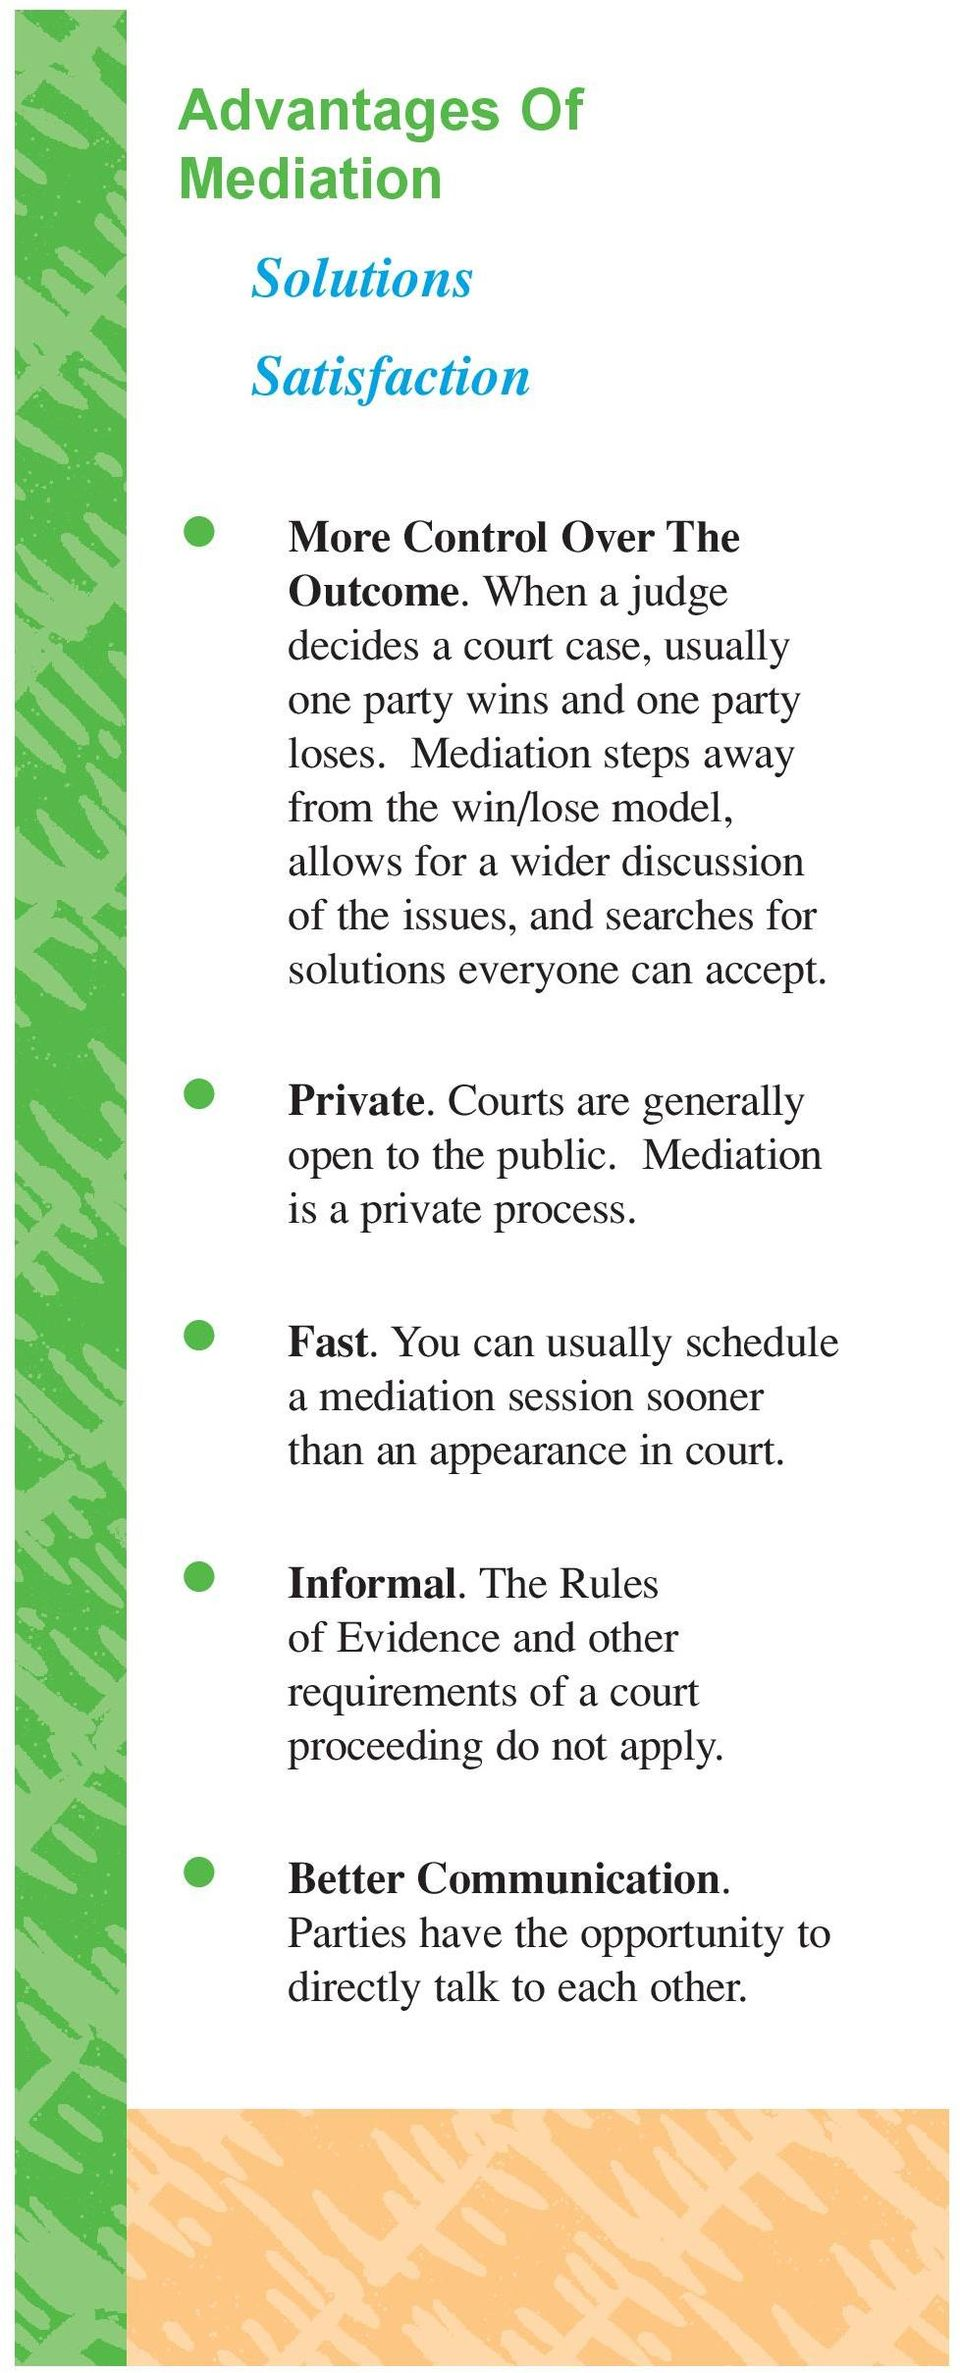 Courts are generally open to the public. Mediation is a private process. Fast. You can usually schedule a mediation session sooner than an appearance in court.